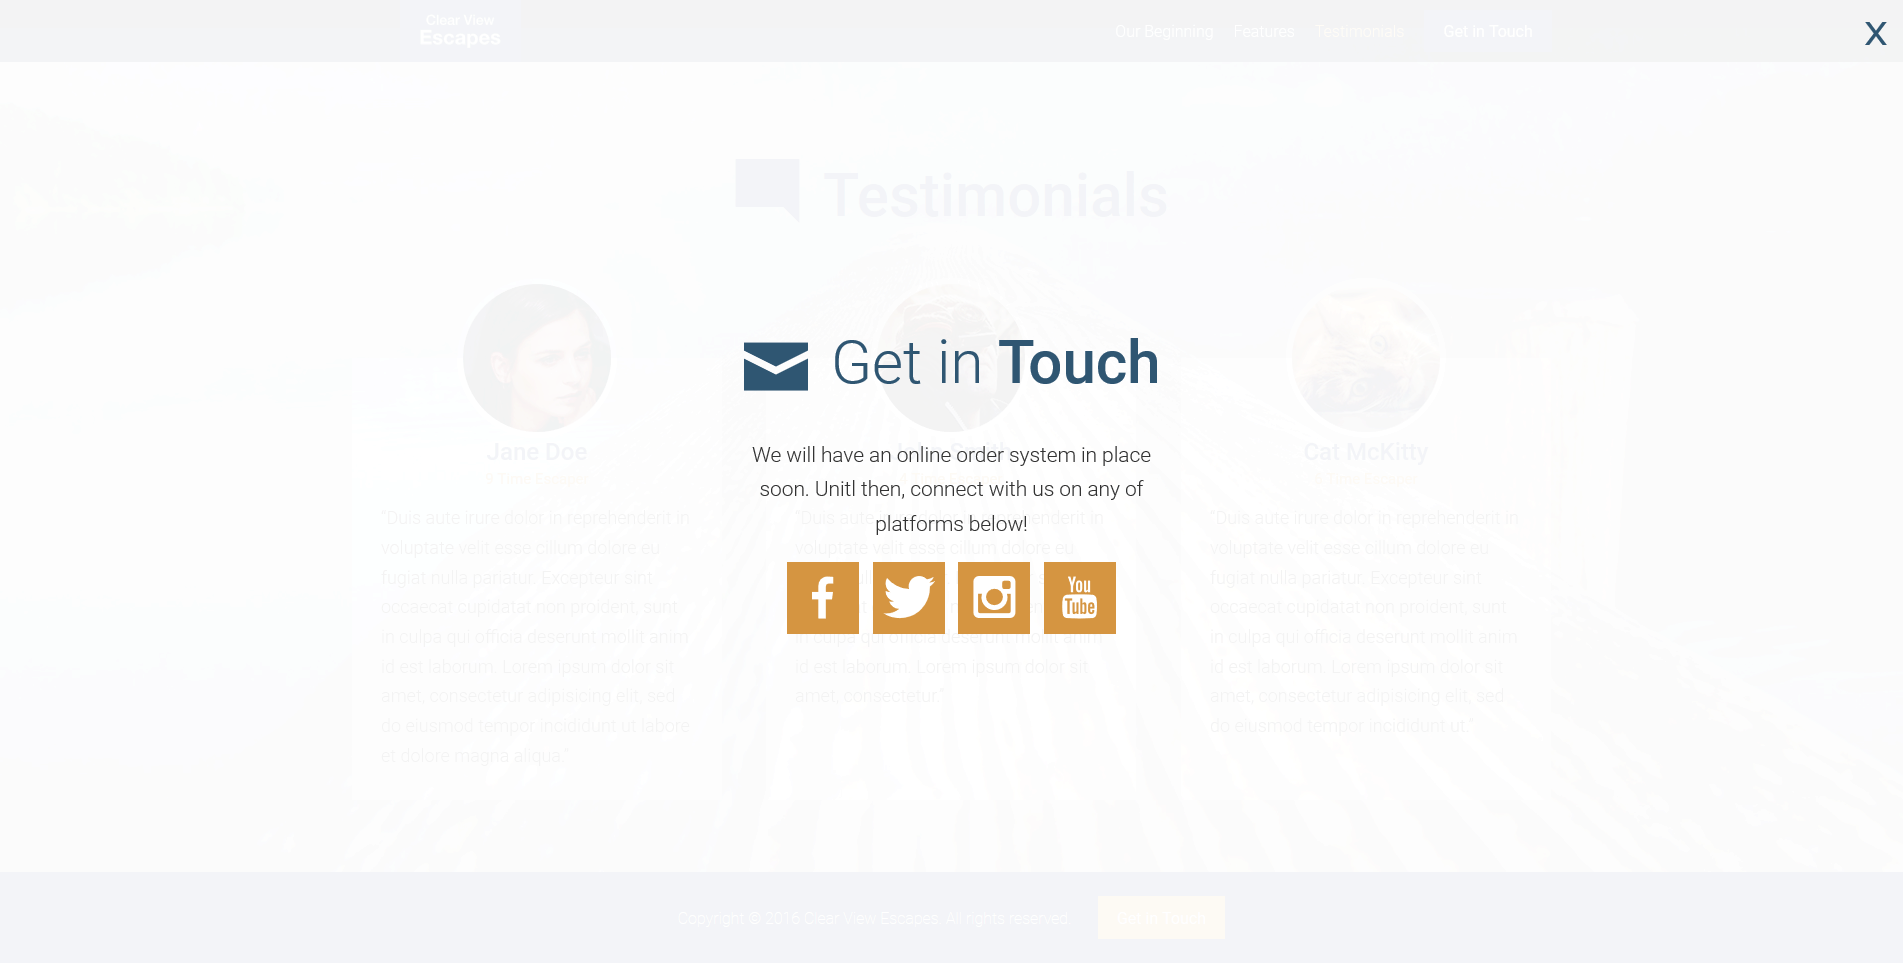 get in touch overlay